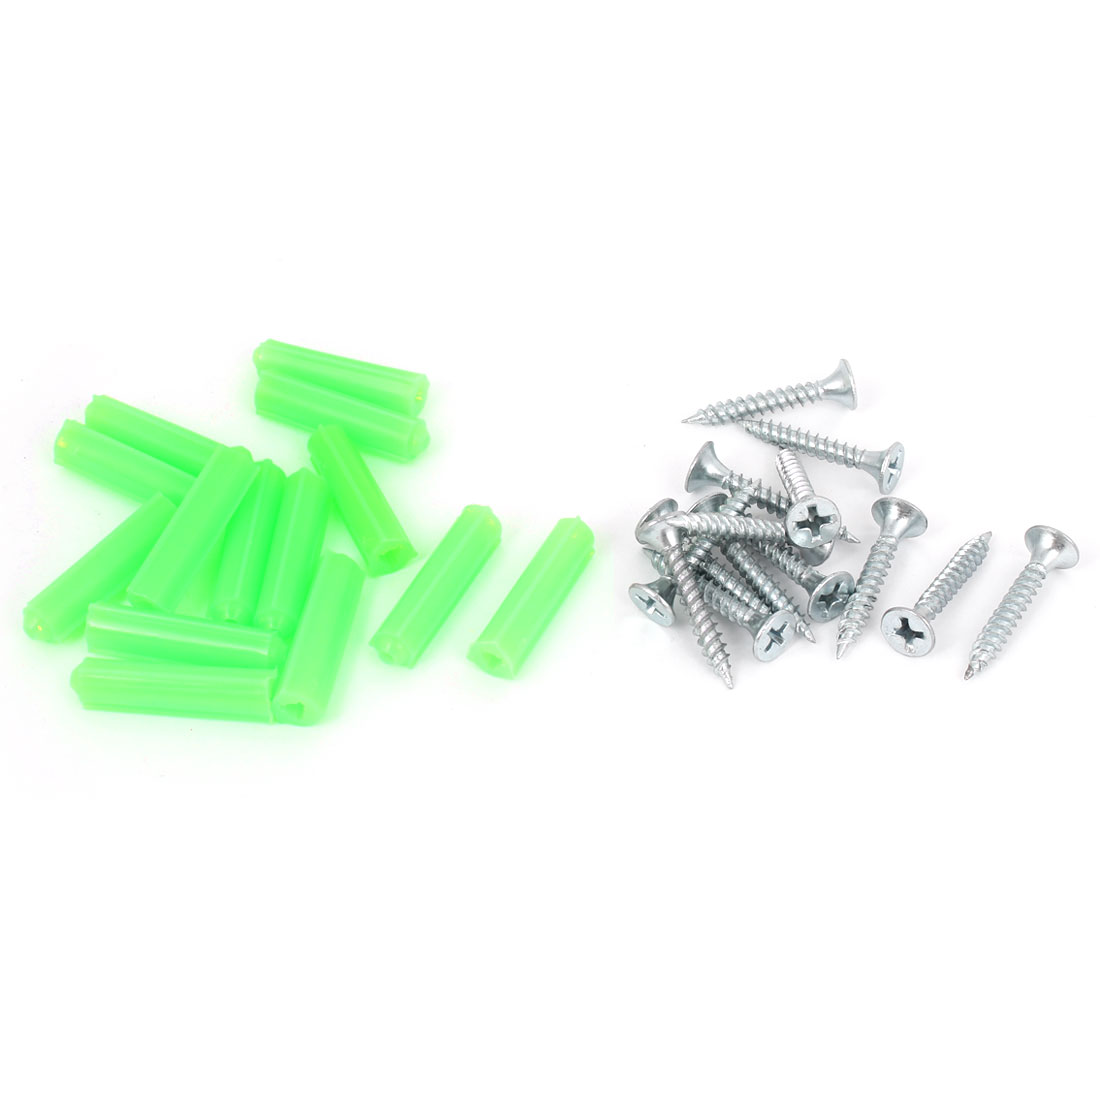 14pcs Metal Masonry Screw Silver Tone + Plastic Wall Plug Green 27mm x 7mm